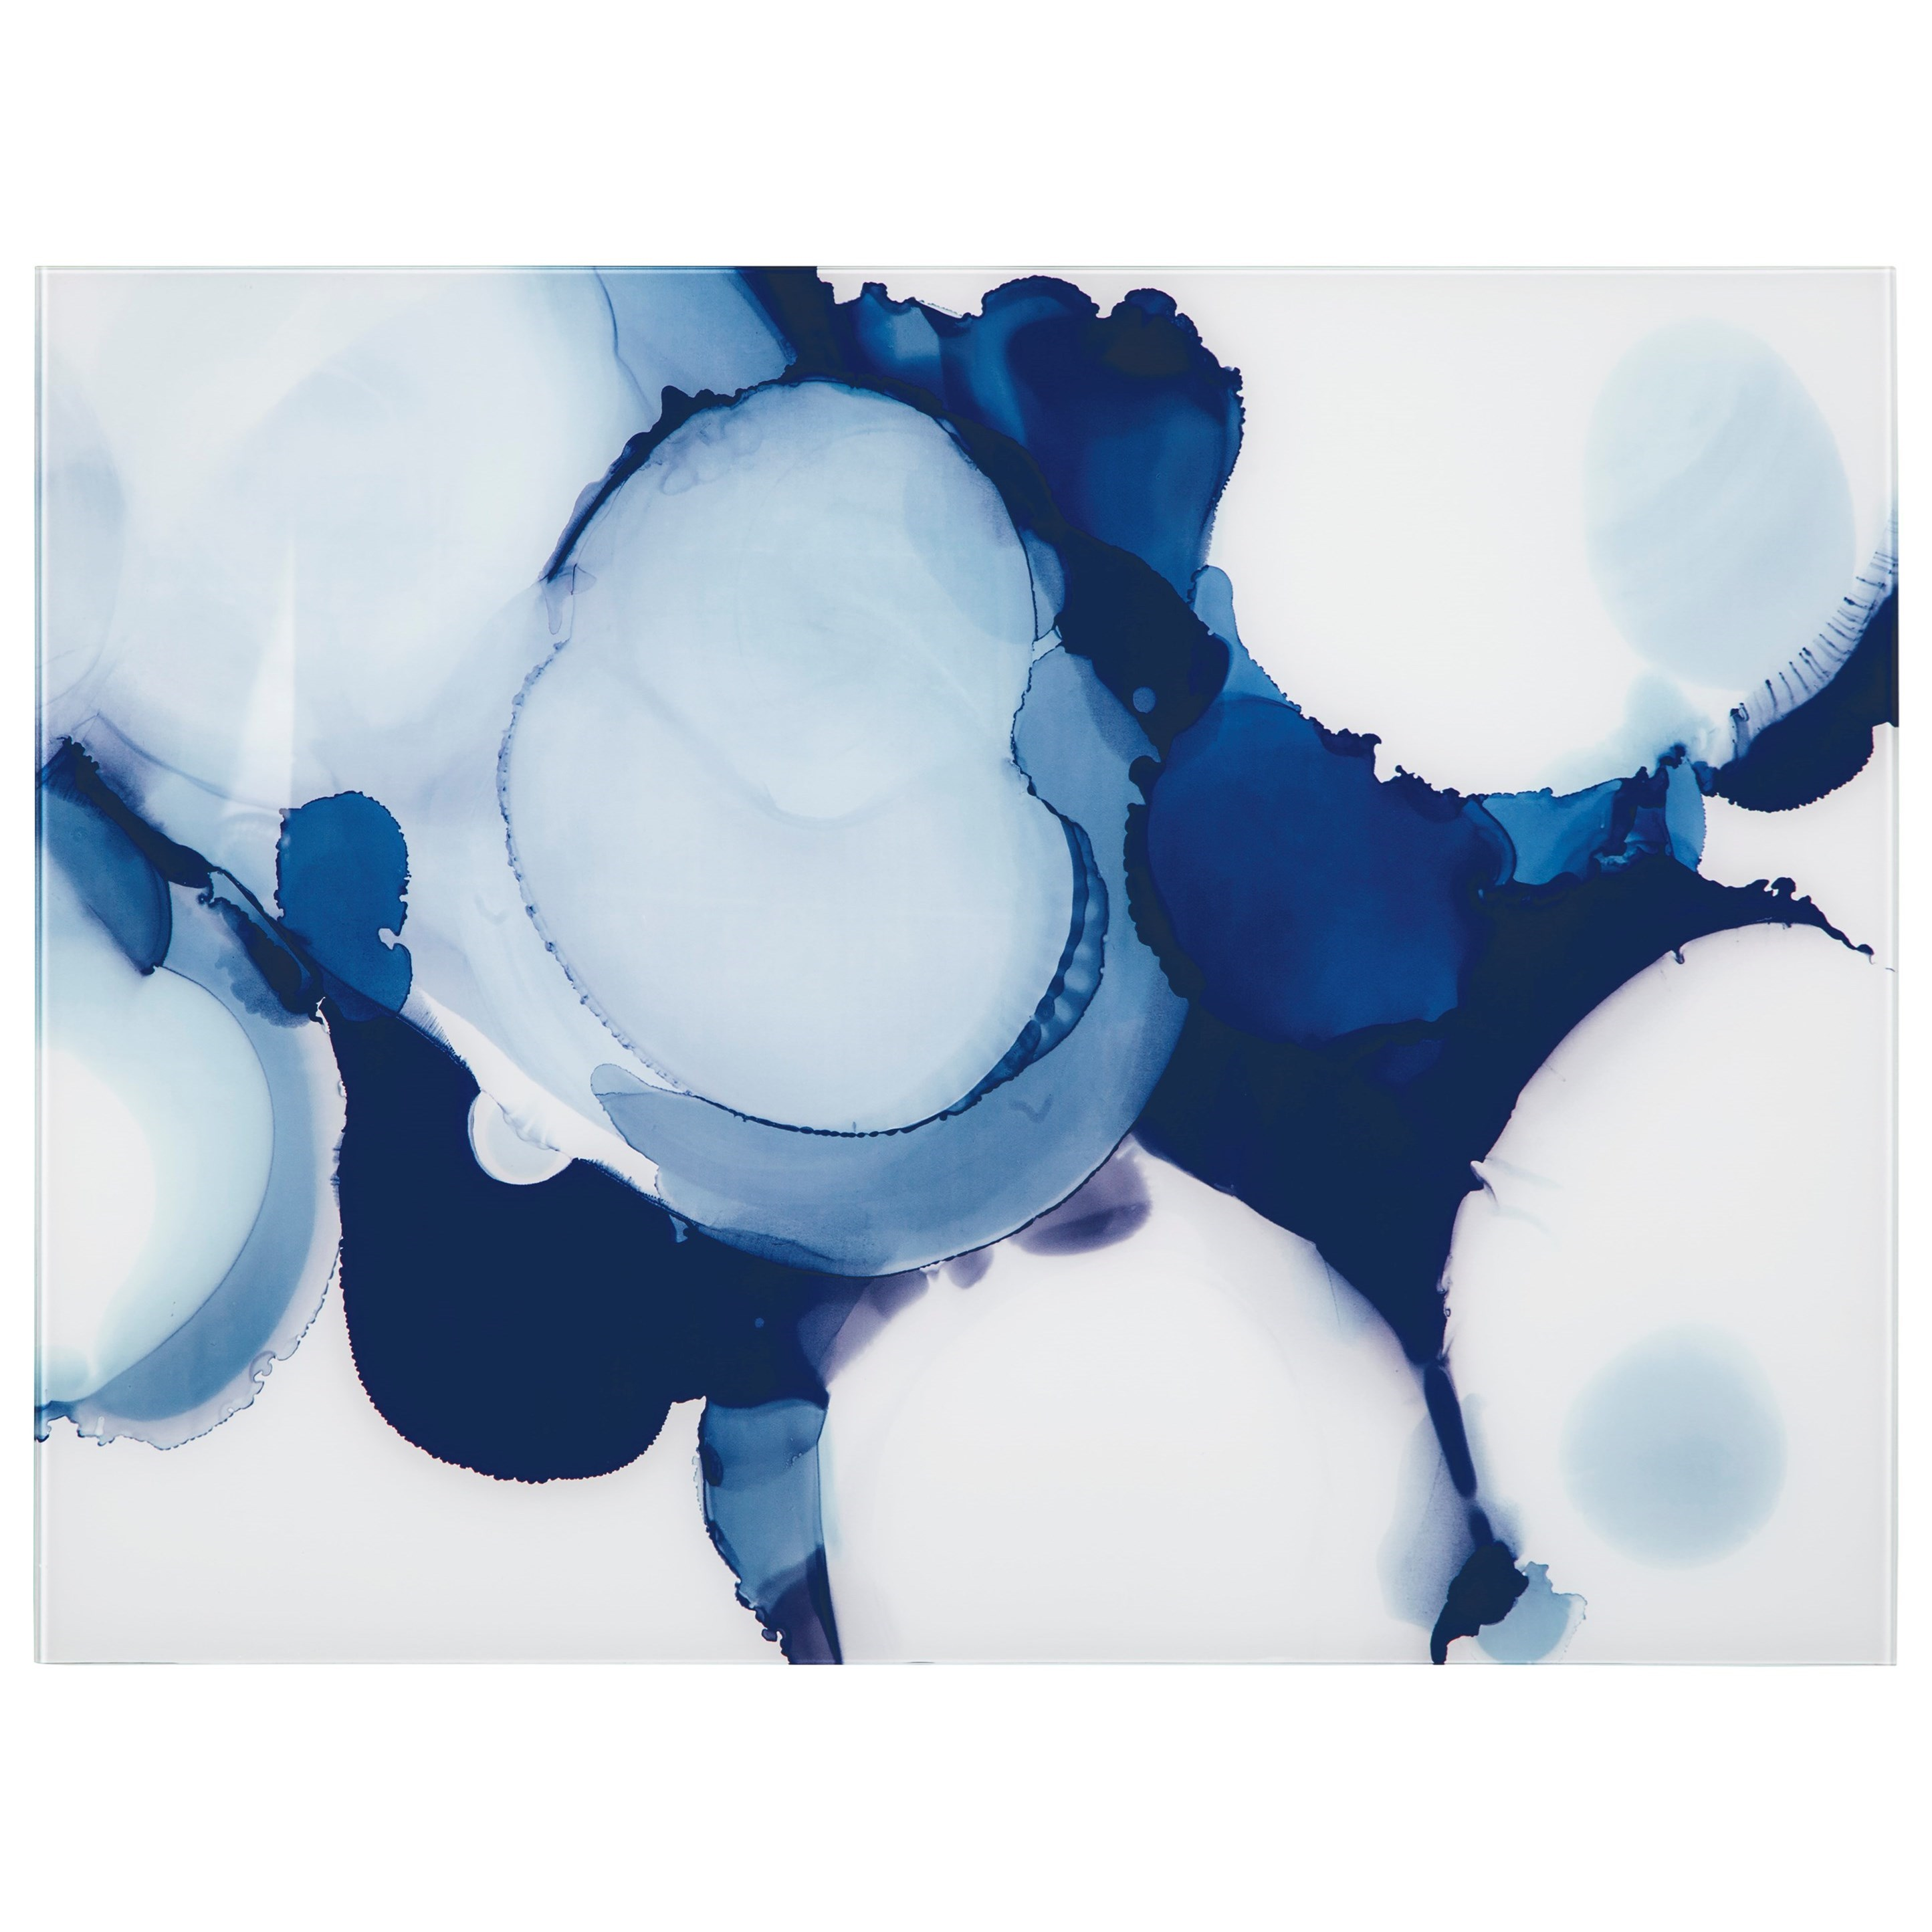 Wall Art Ariadna Blue/White Wall Decor by Signature Design by Ashley at Lapeer Furniture & Mattress Center